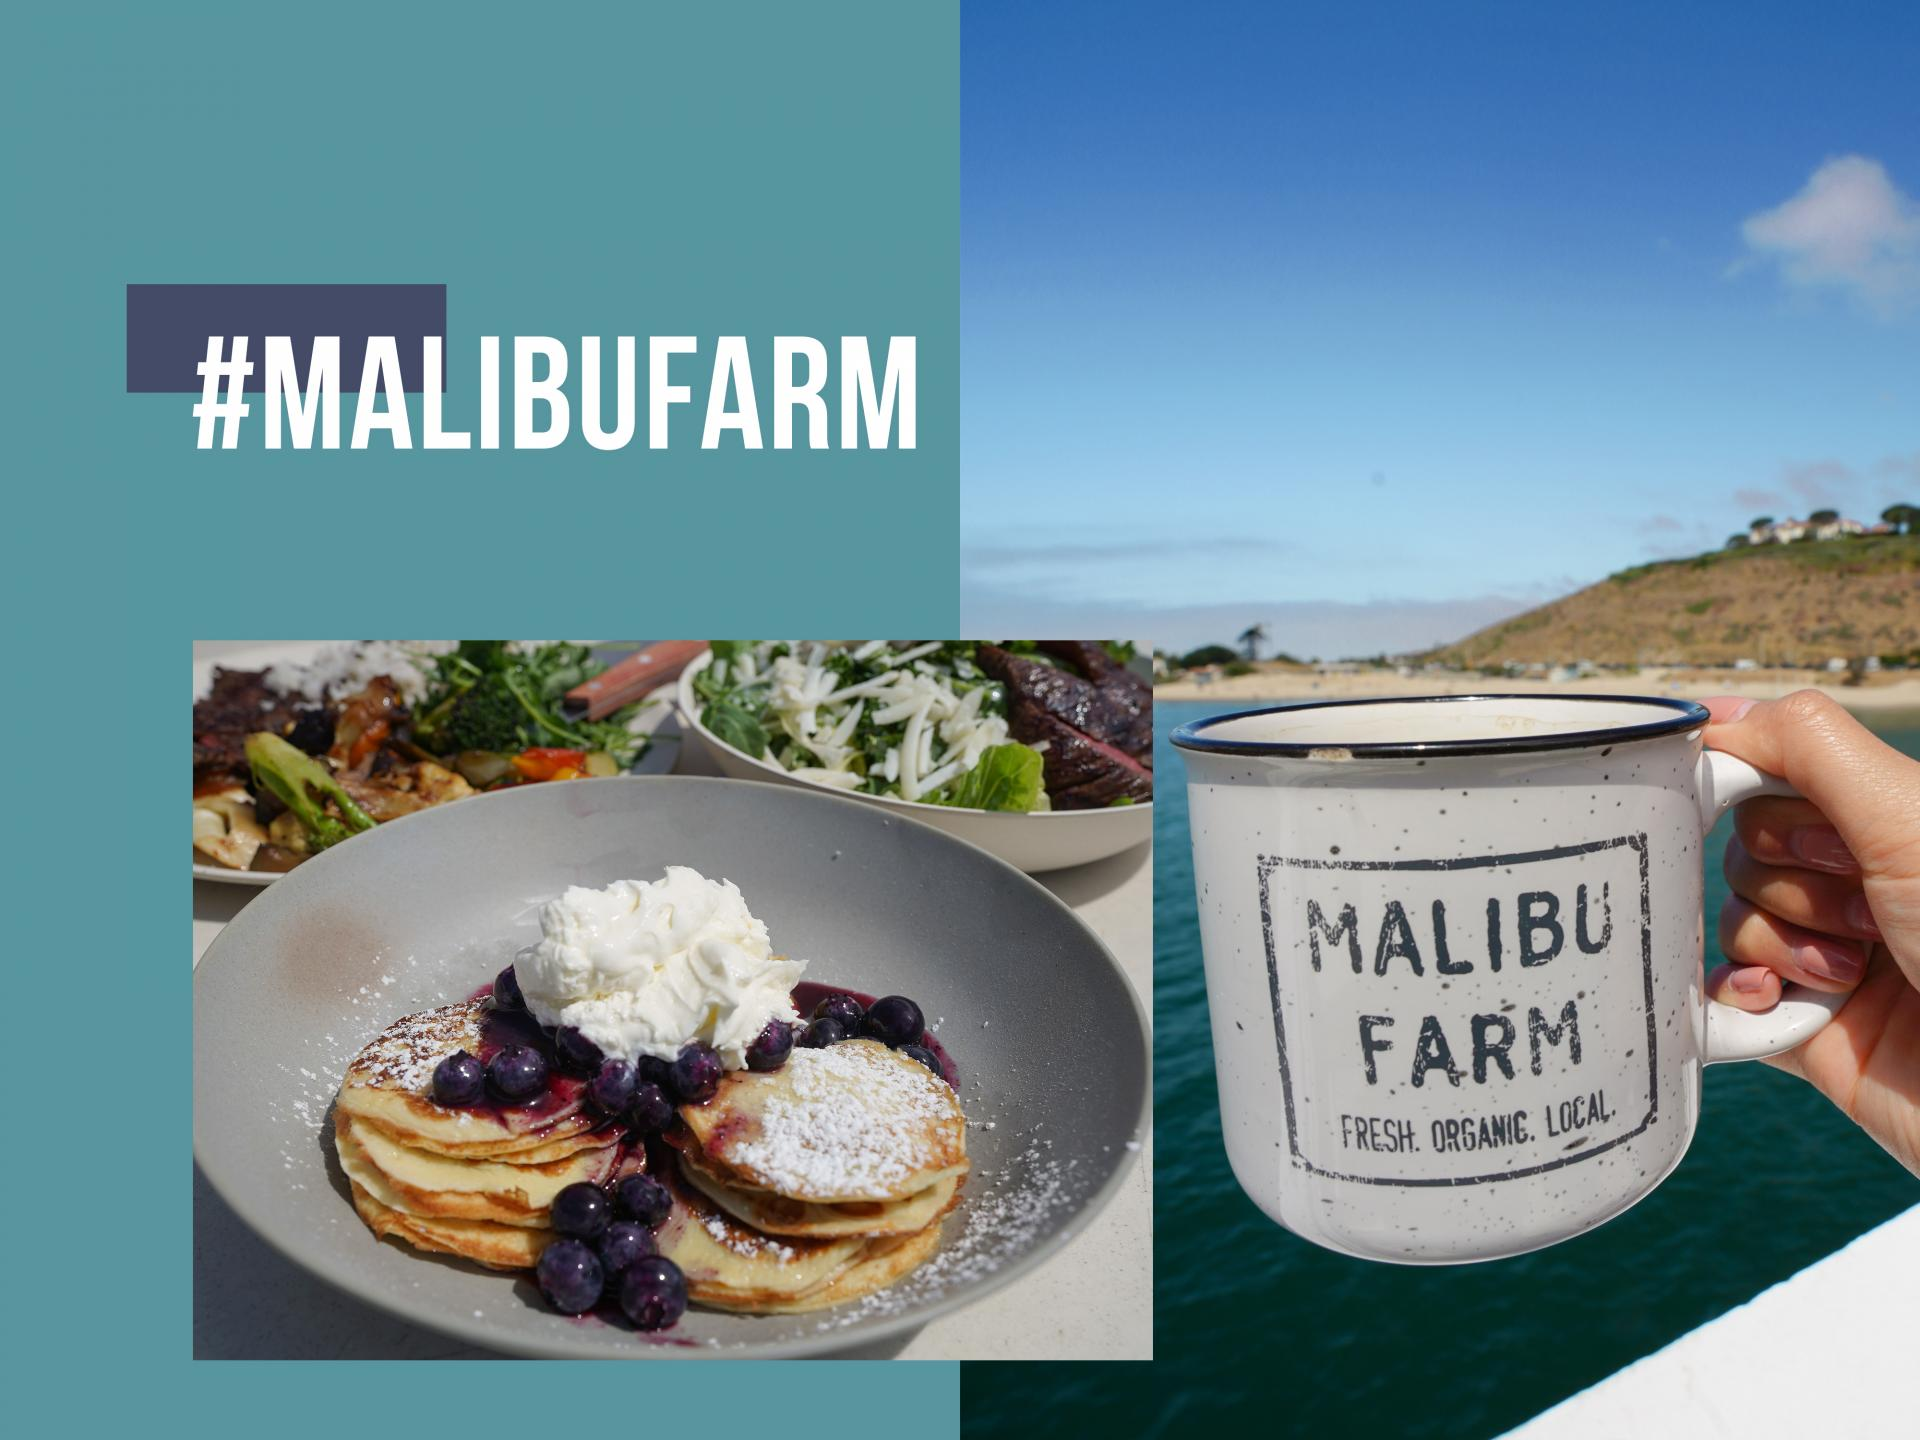 Lunch at Malibu Farm.